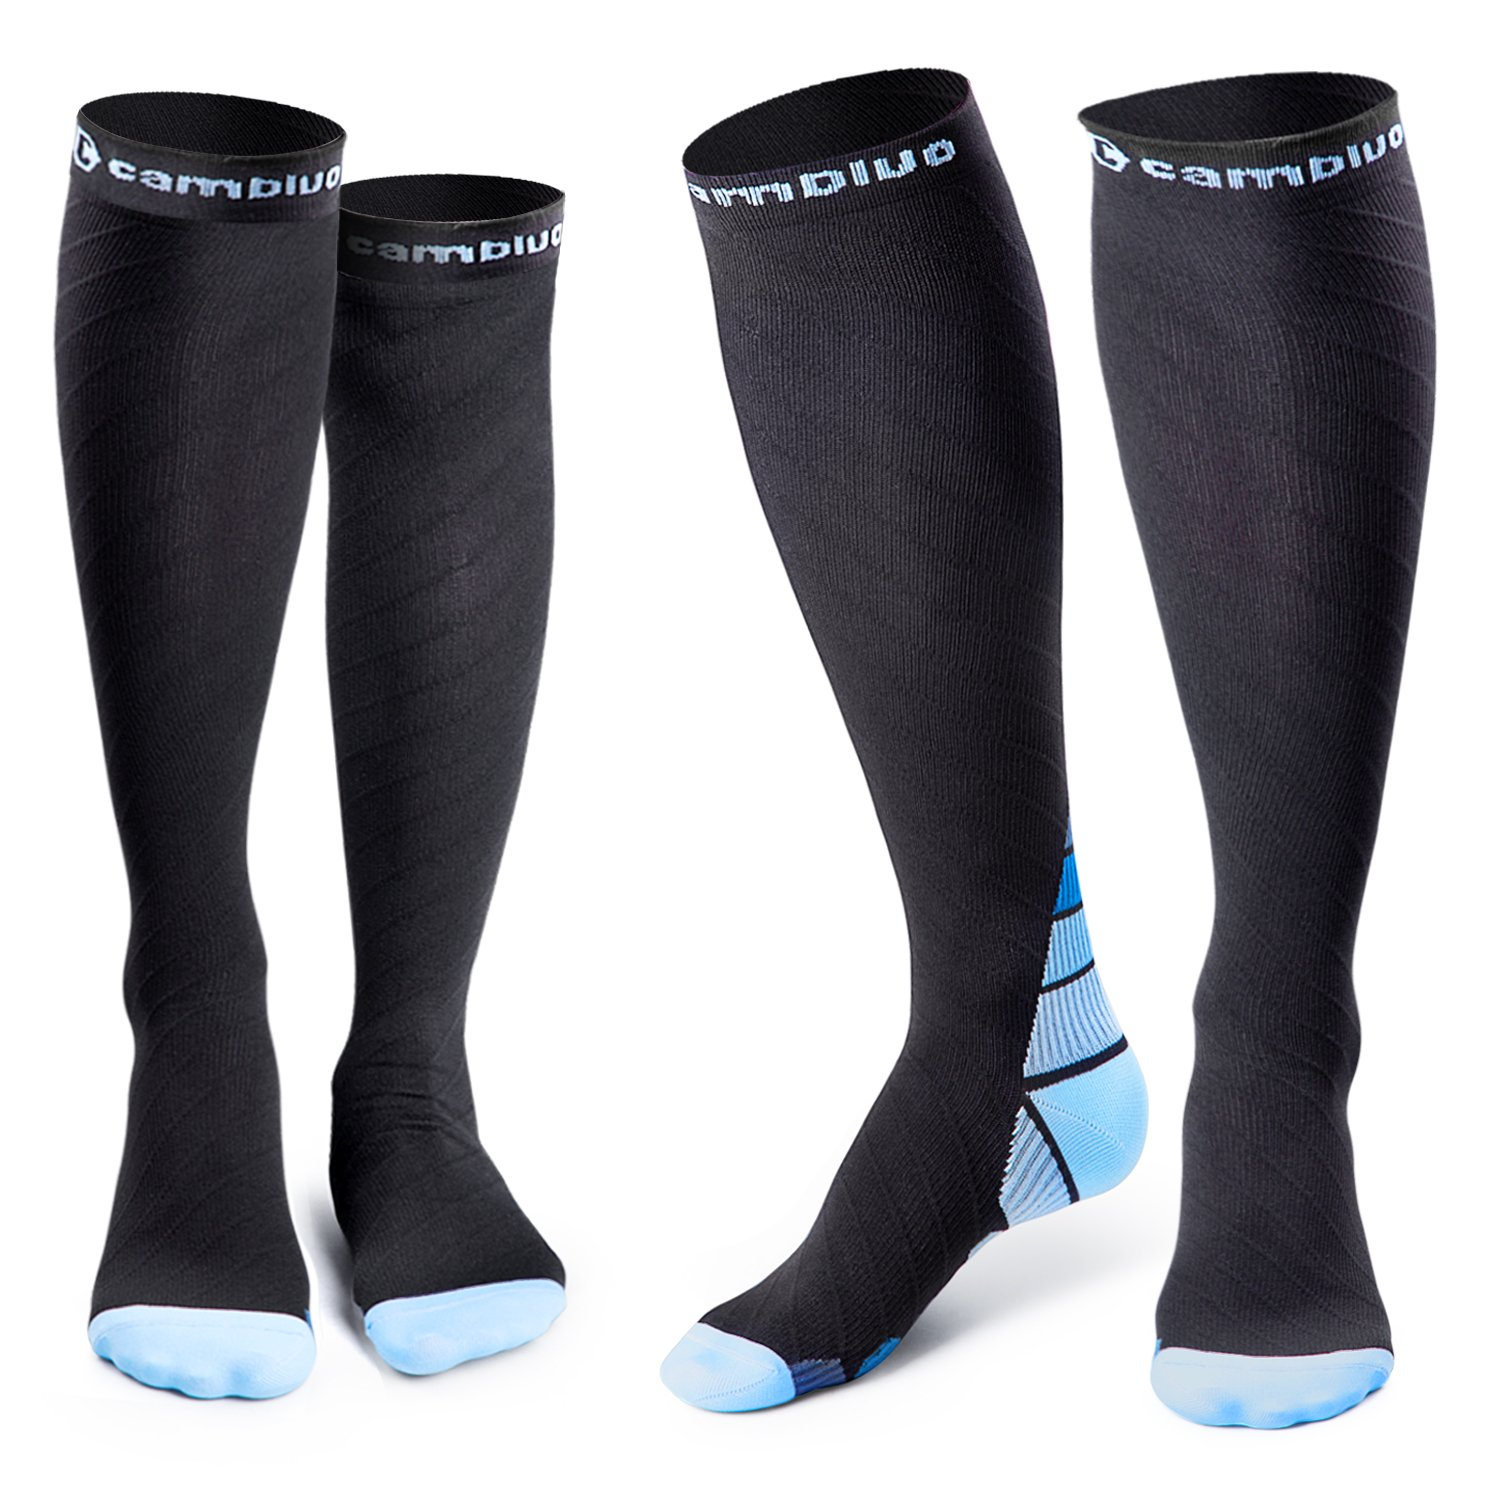 Cambivo 2 Pairs Compression Socks for Women & Men, Sports/Blue, L/XL (Women 8-15.5 / Men 8-13)